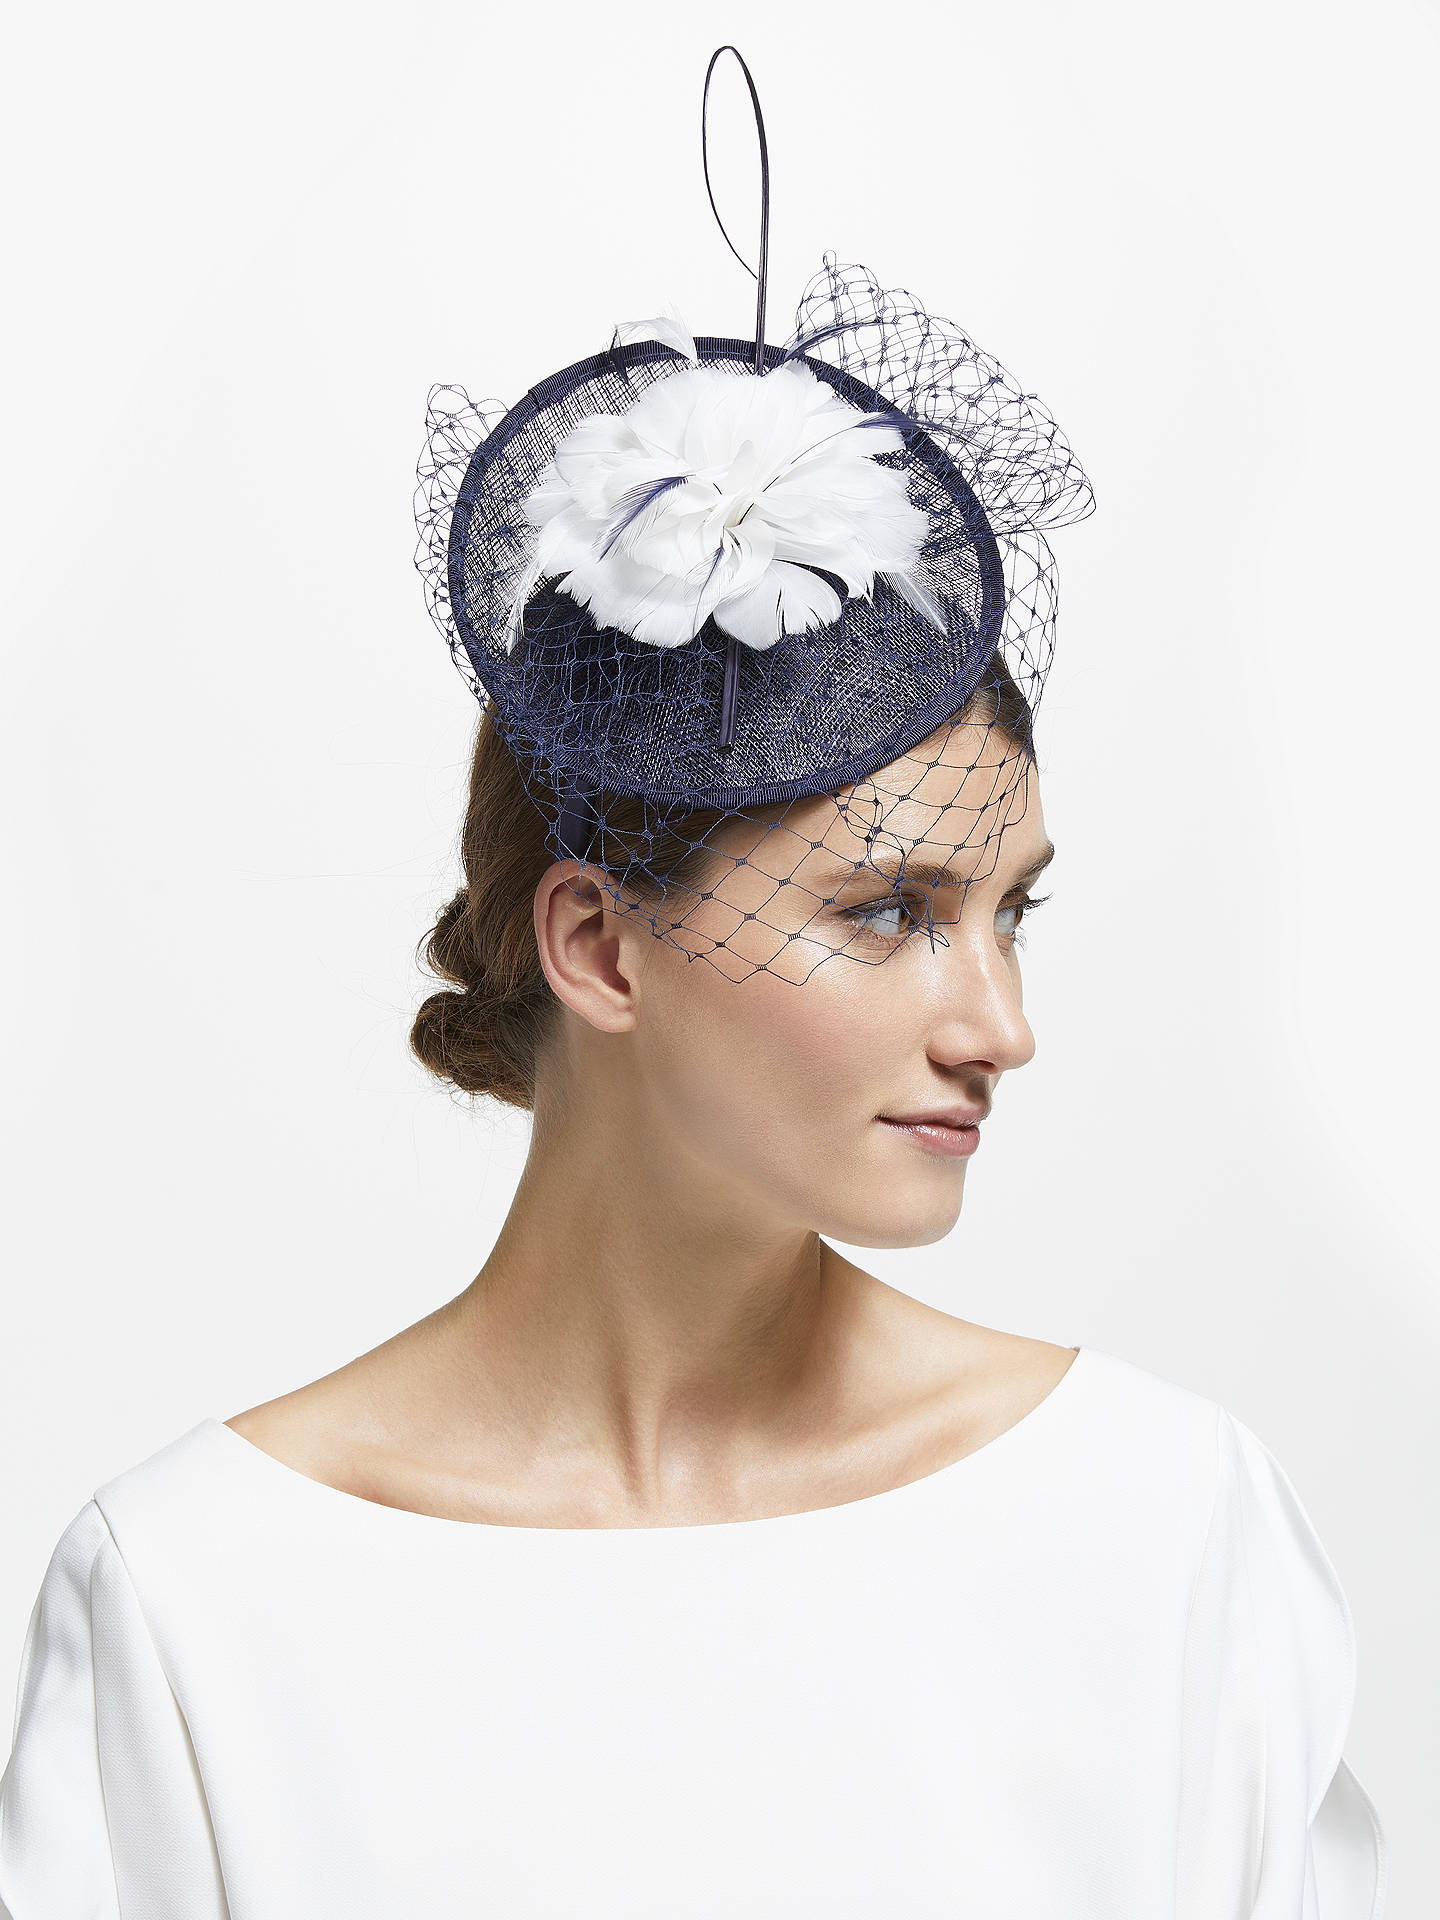 BuyJohn Lewis   Partners Camille Disc Feather Veil Fascinator f1047fad832